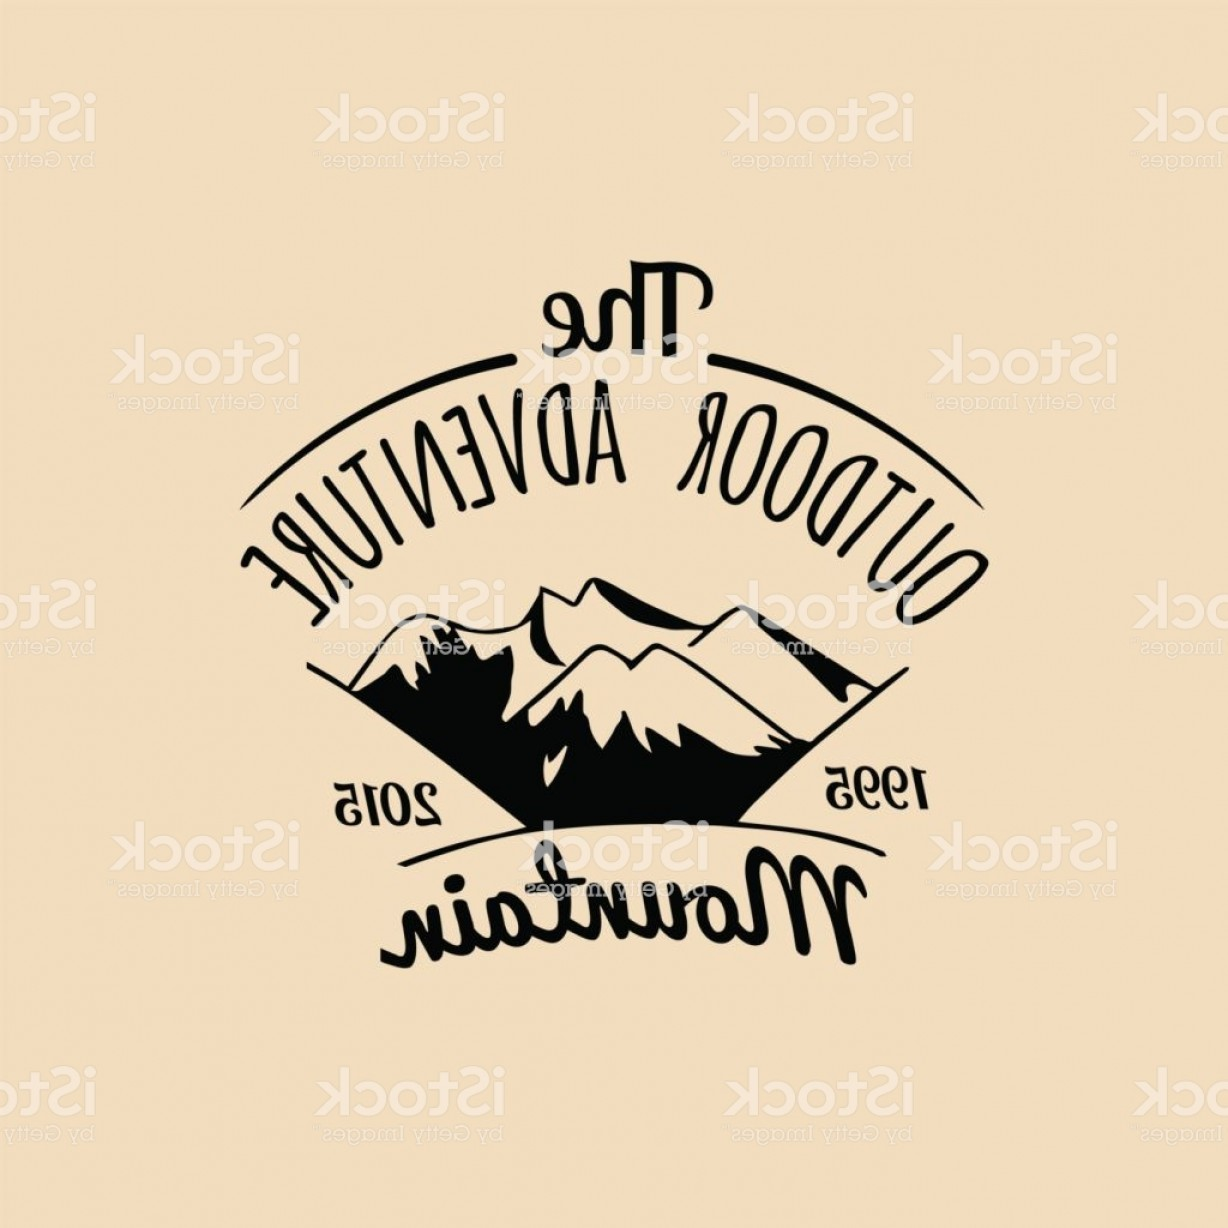 Hipster Logo Vectors Mountain: Vector Camp Icon Tourism Sign With Hand Drawn Mountains Landscape Retro Hipster Gm